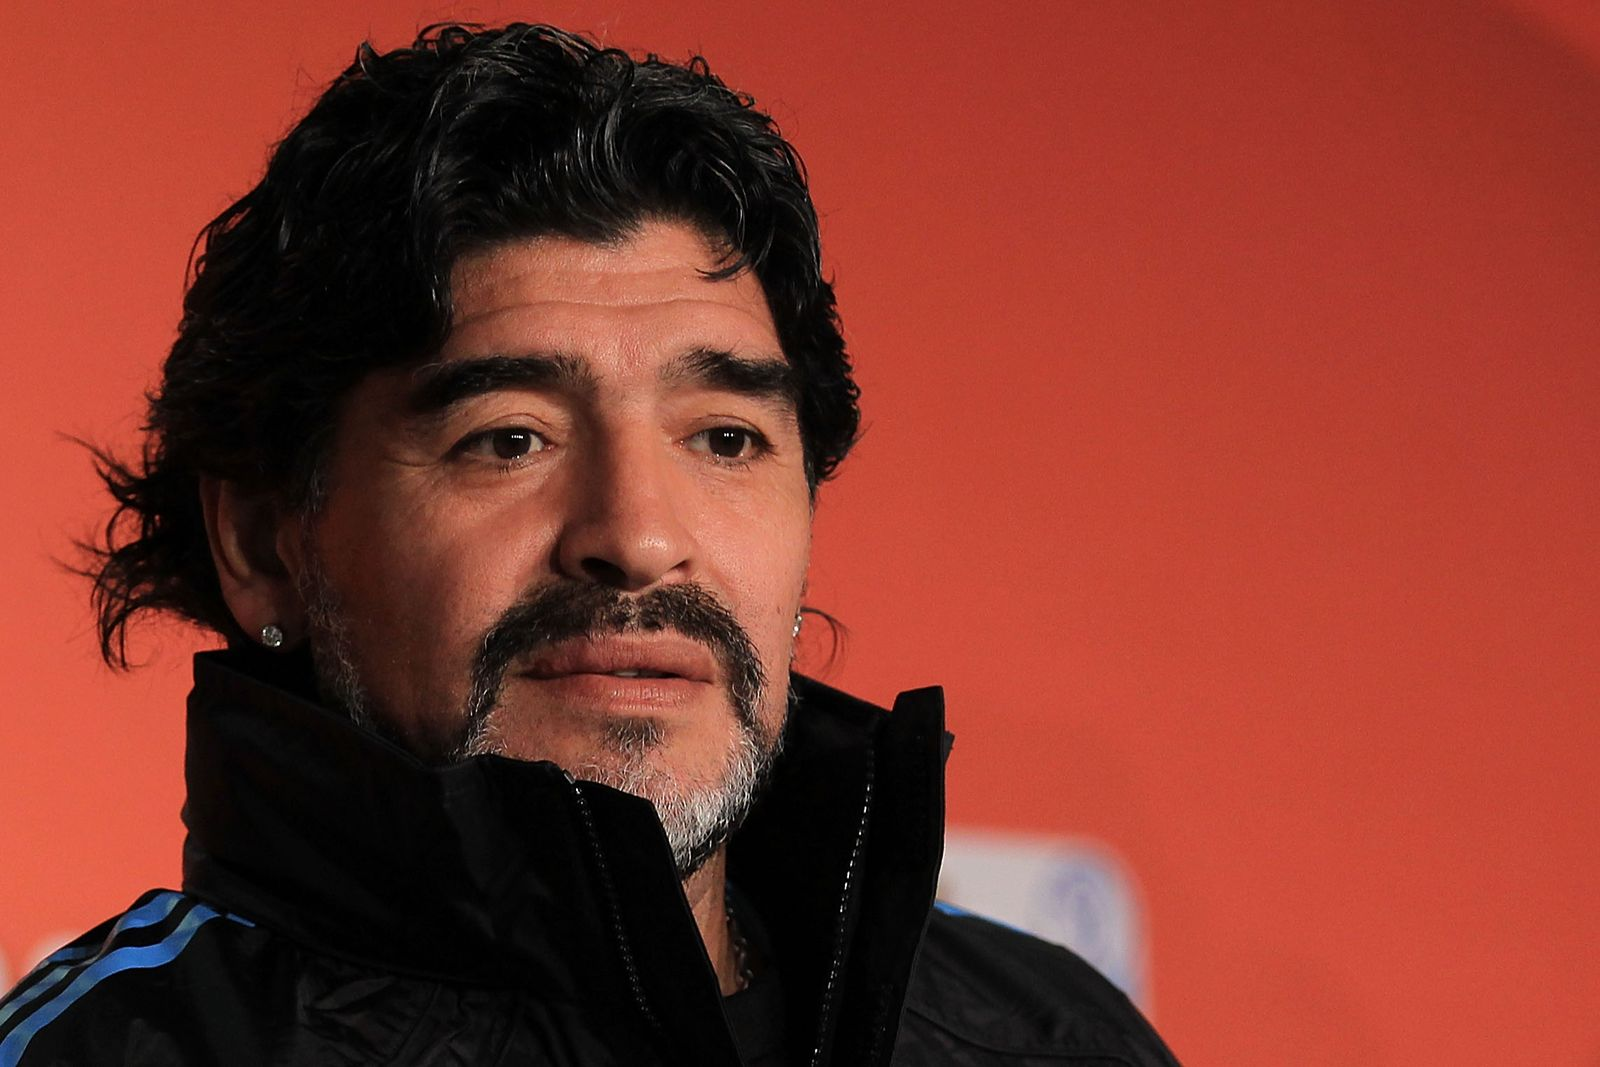 Diego Maradona speaks to the media during a press conference at Green Point Arena on July 2, 2010, in Cape Town, South Africa | Photo: Chris McGrath/Getty Images